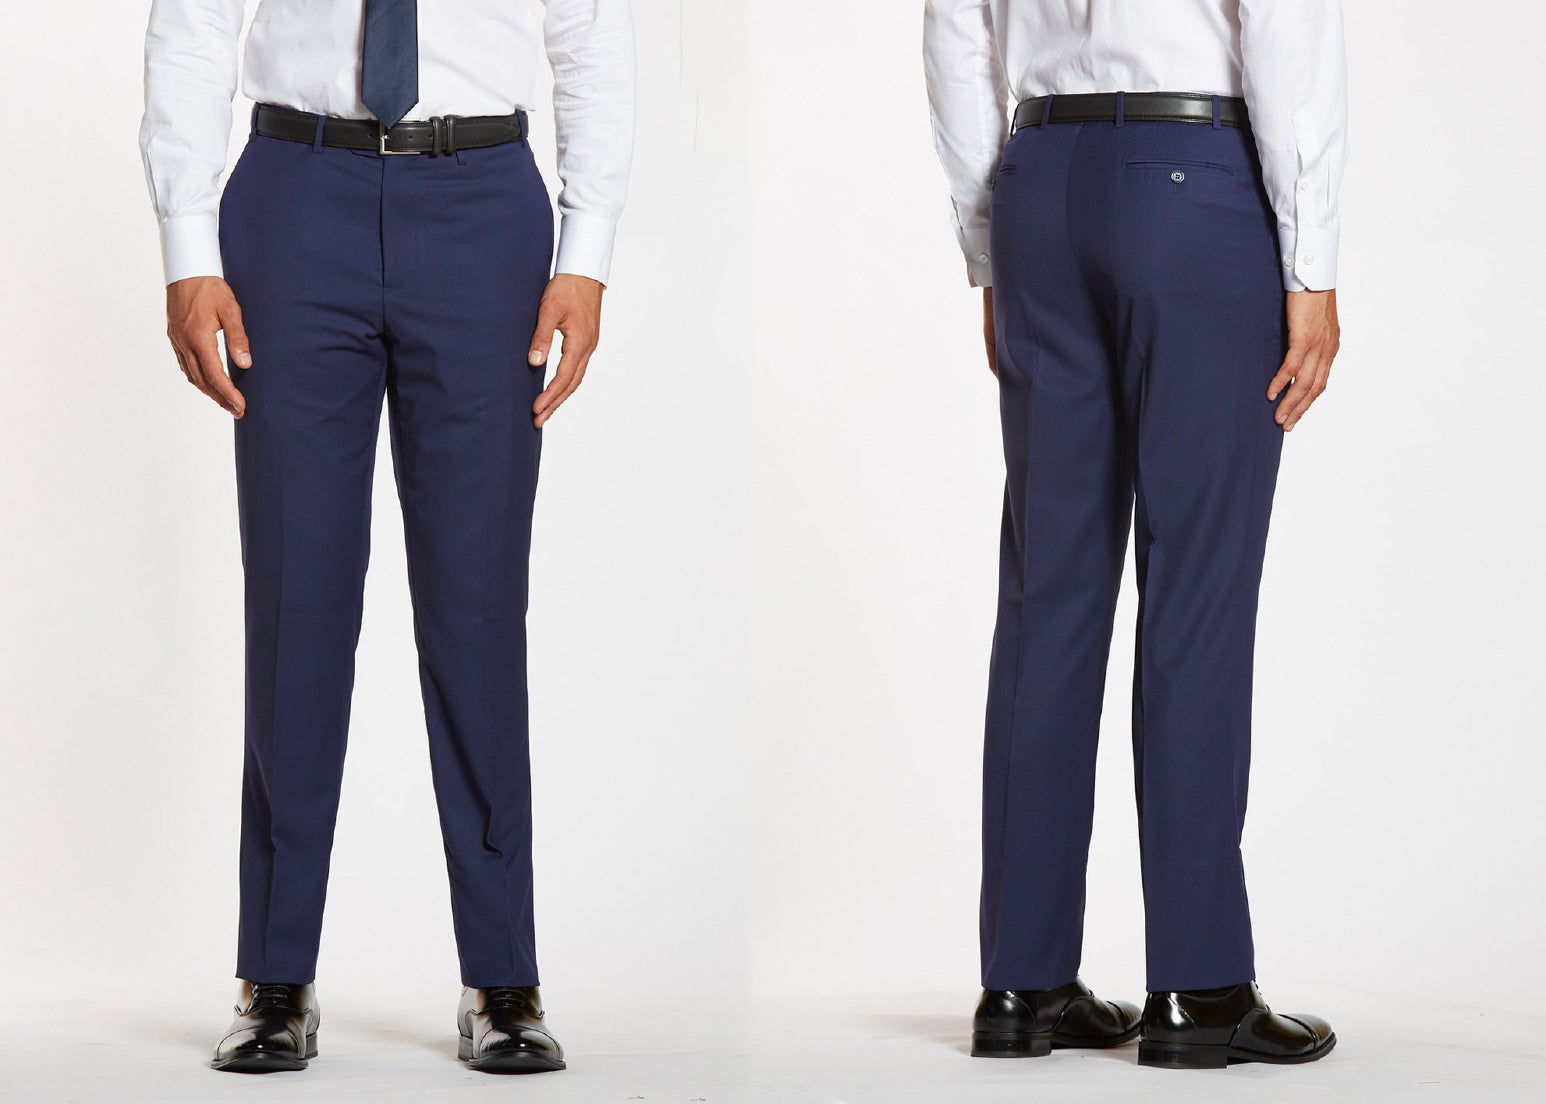 The Groomsman Suit: Wedding Suit Alterations Guide: Pant Hemming and Other Adjustments